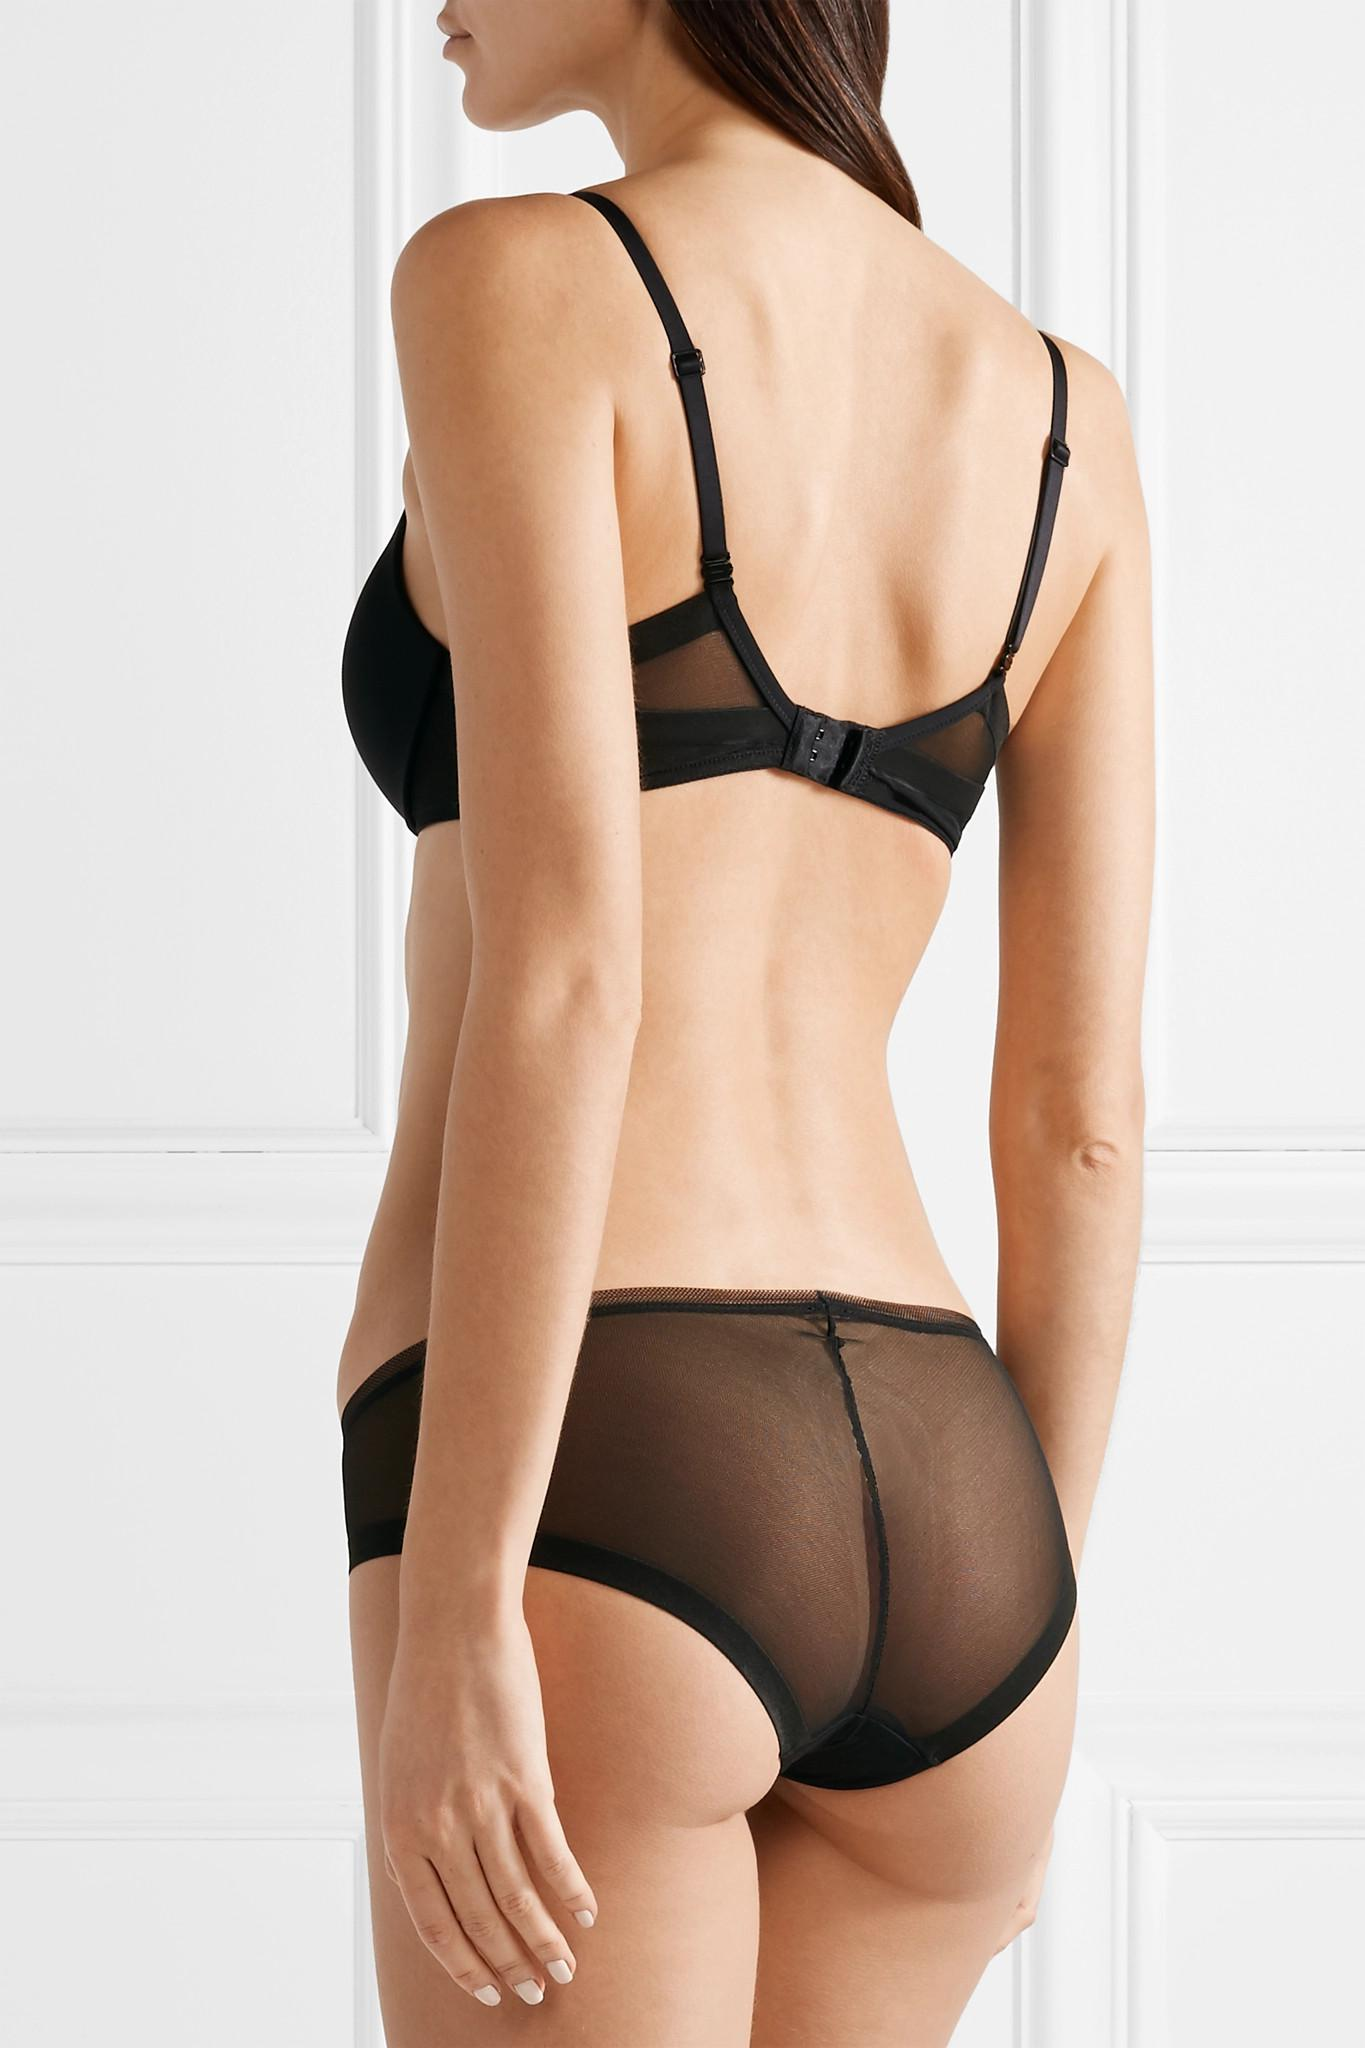 Calvin Klein - Black Sculpted Plunge Push-up Stretch-jersey And Mesh  Underwired Bra. View fullscreen 85f389331